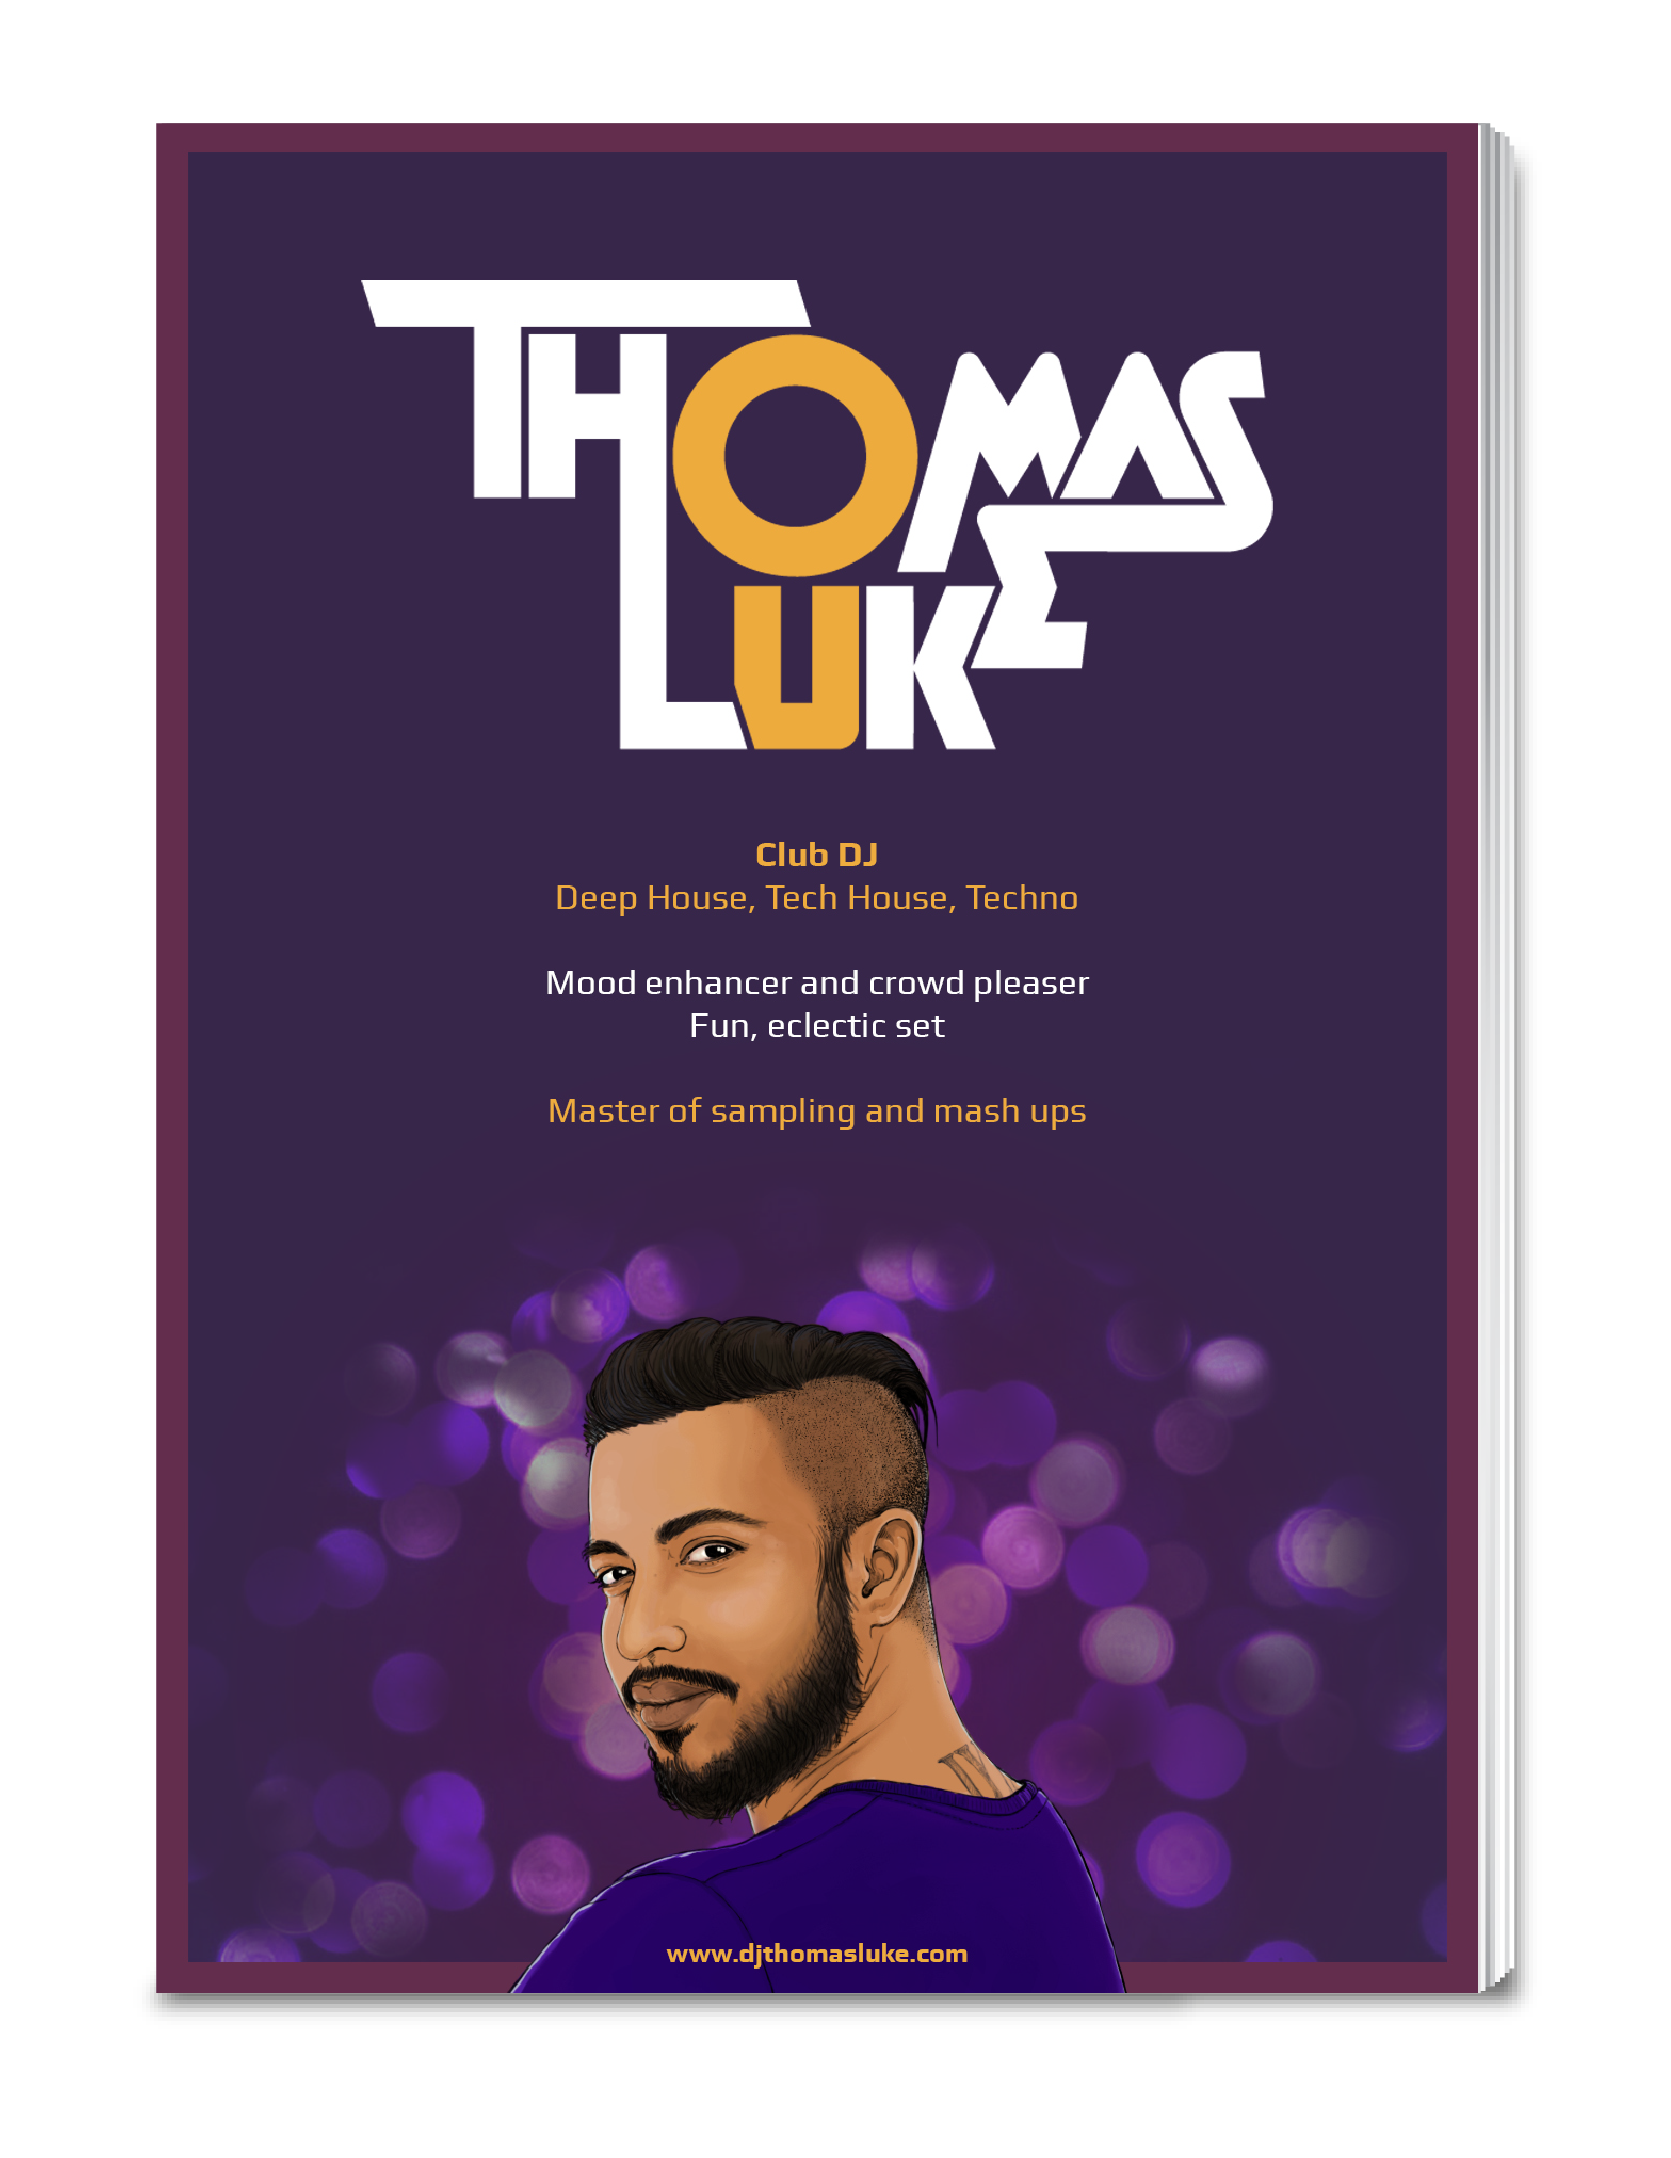 DJ Thomas Luke presskit preview - eKat Communication